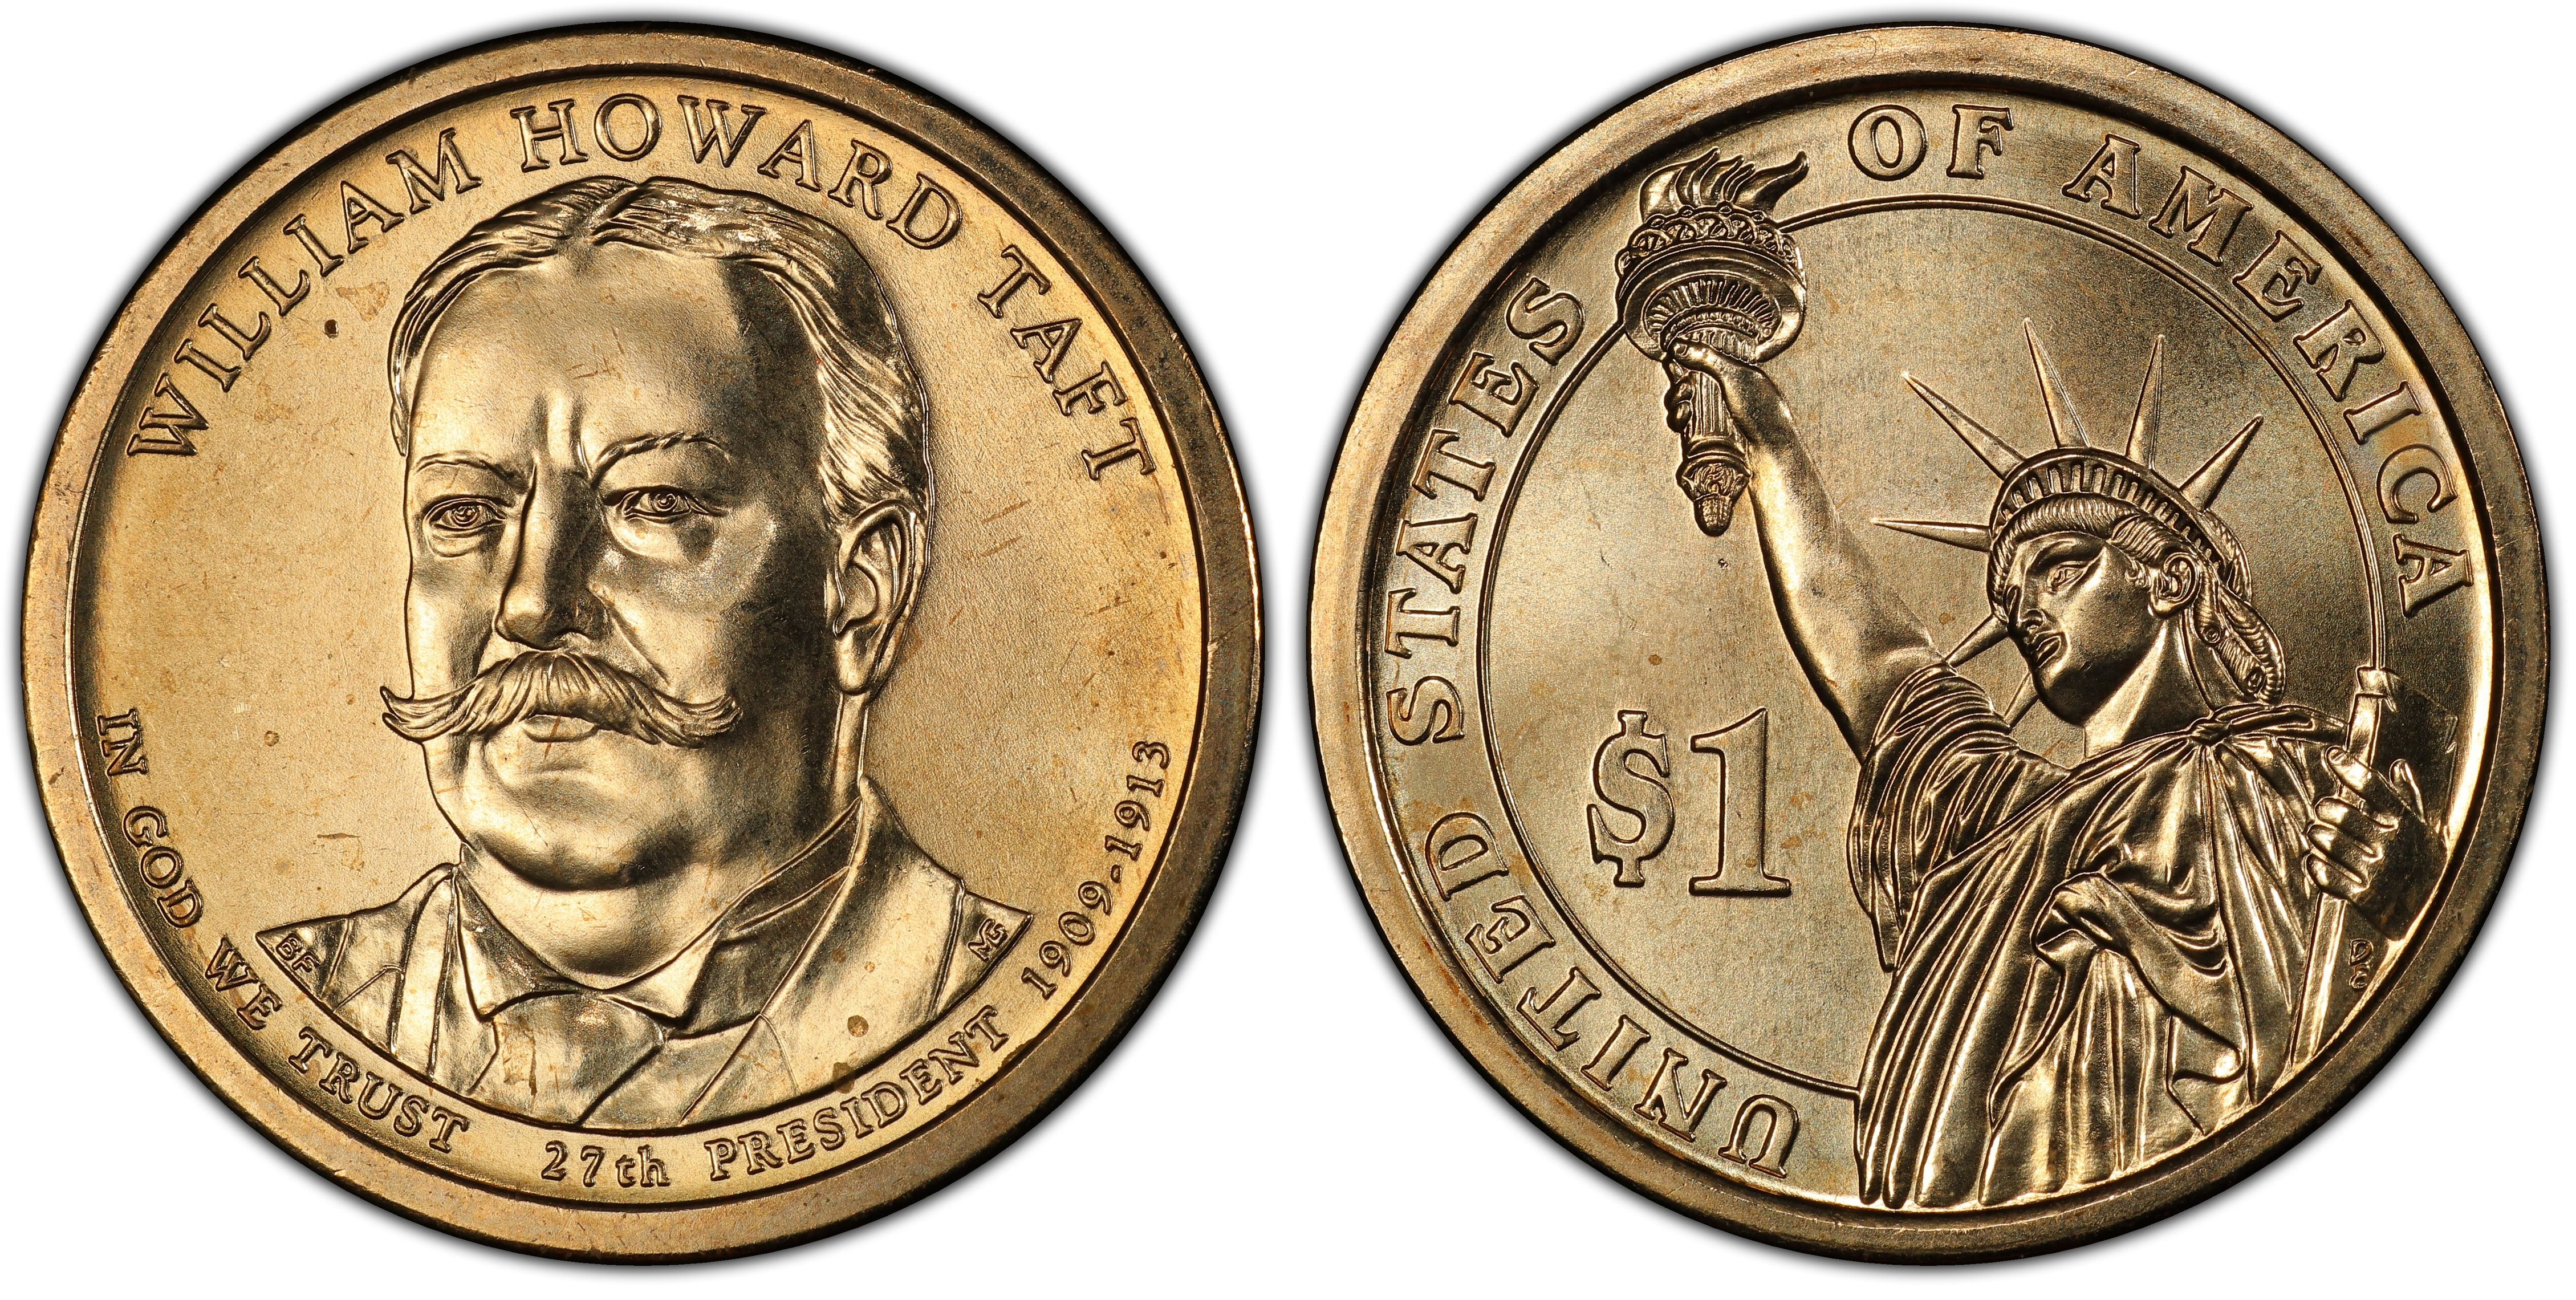 2013 P/&D WILLIAM HOWARD TAFT GOLDEN PRESIDENT DOLLARS TWO COINS SET UNCIRCULATED